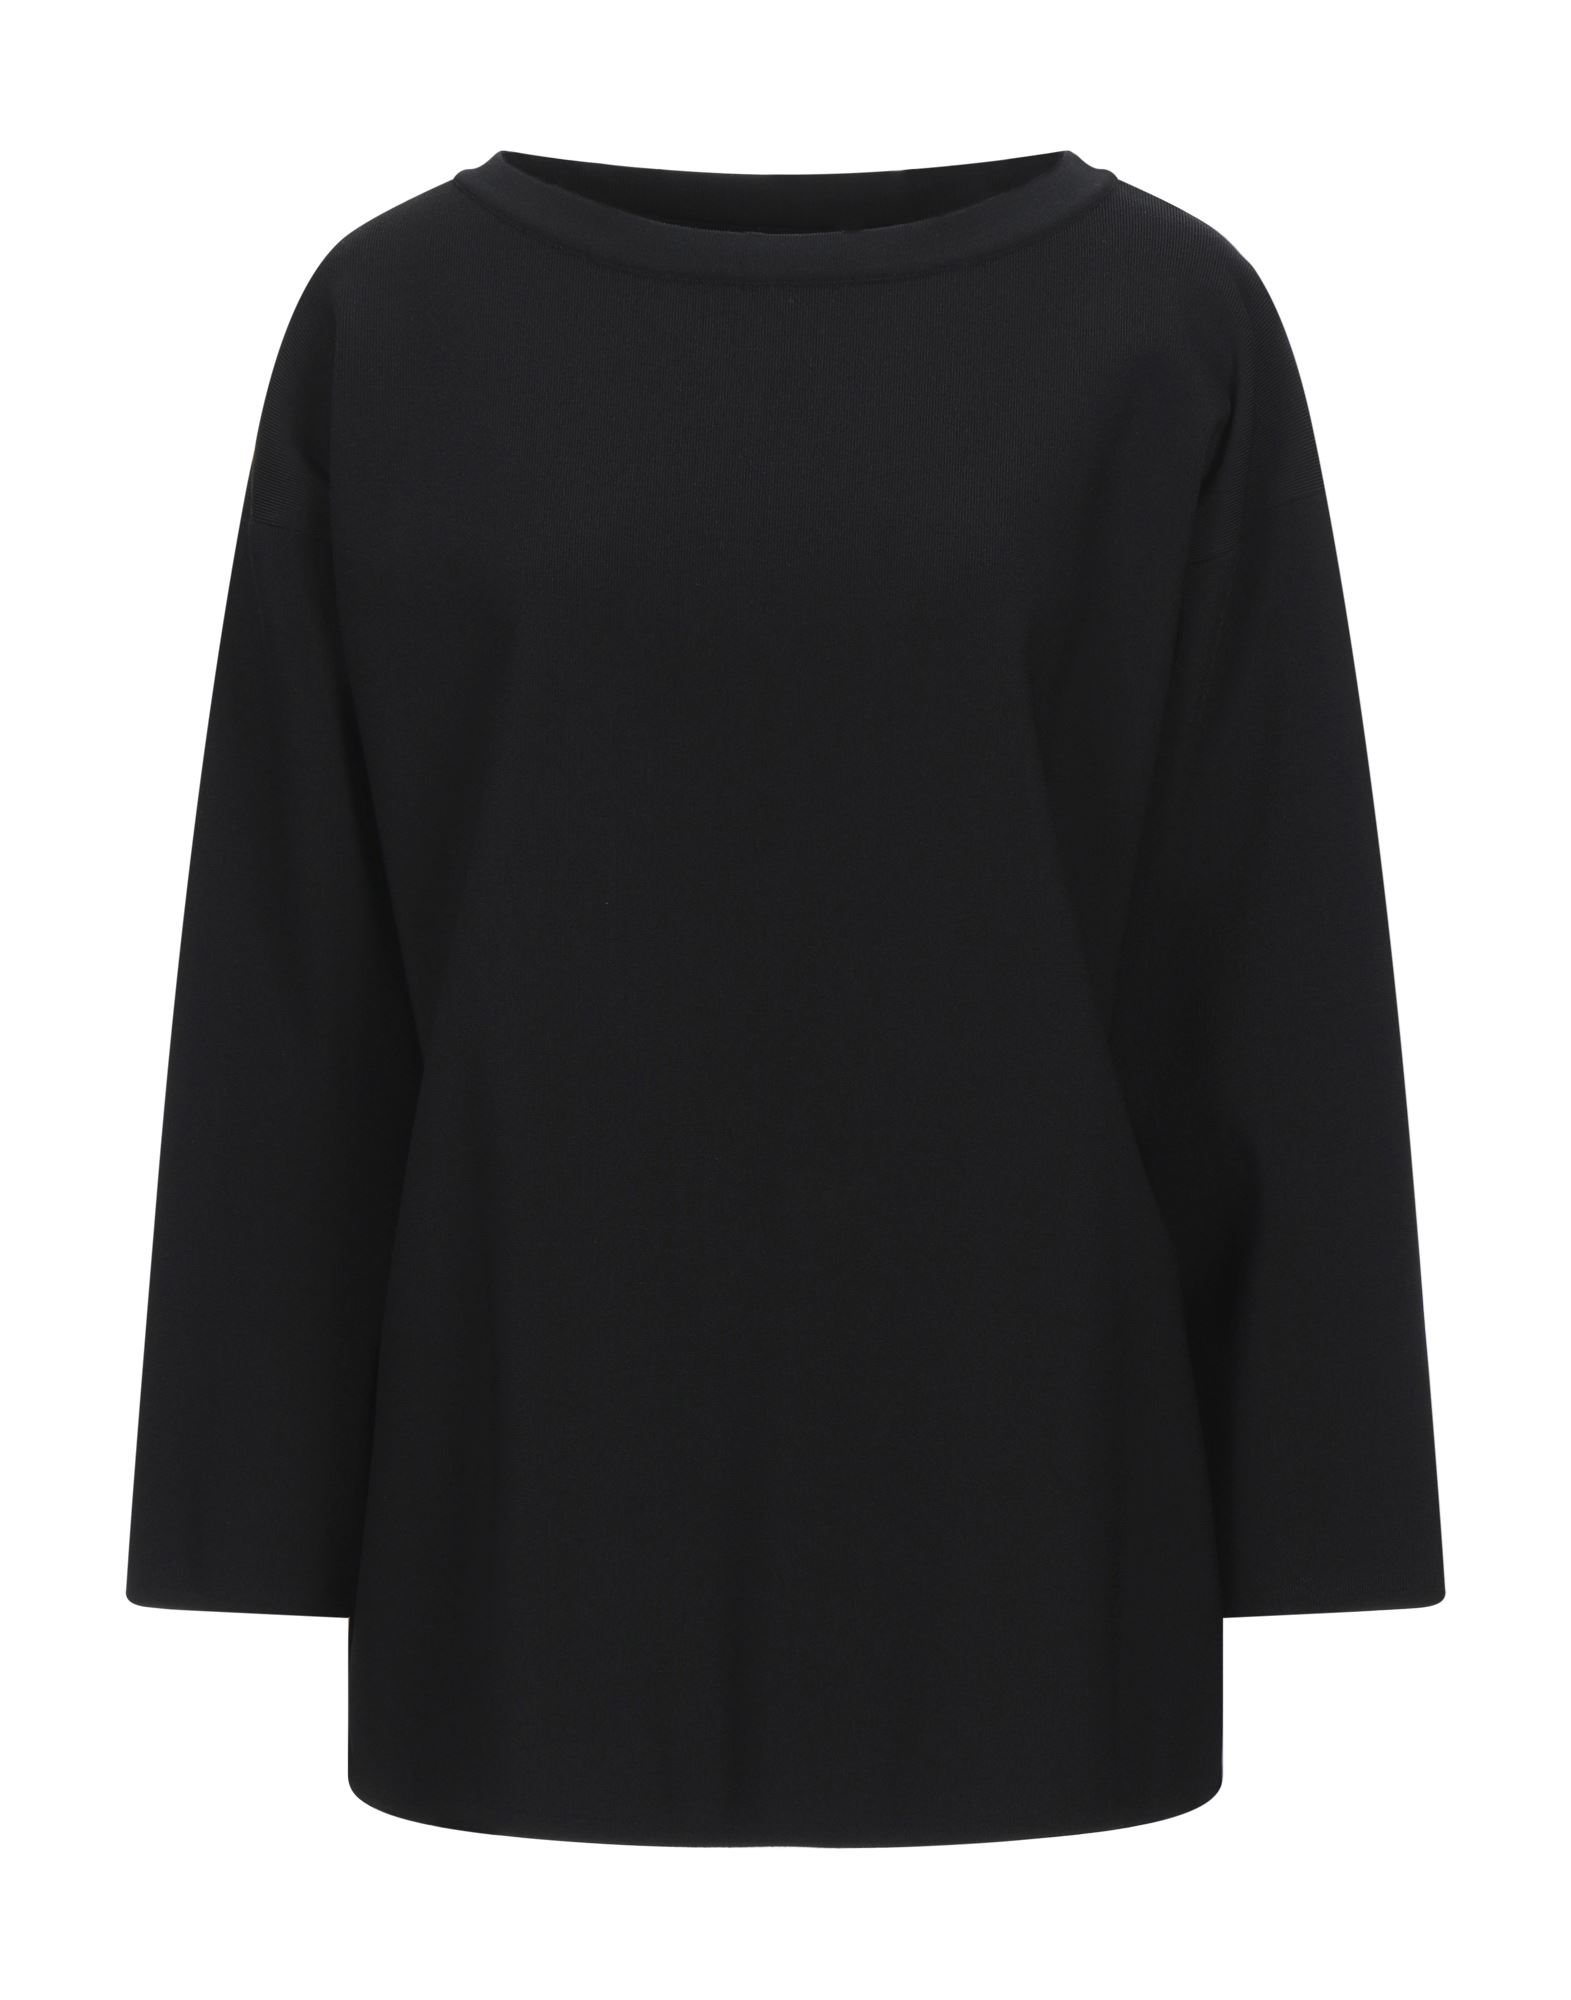 THE ROW Sweaters - Item 14095177